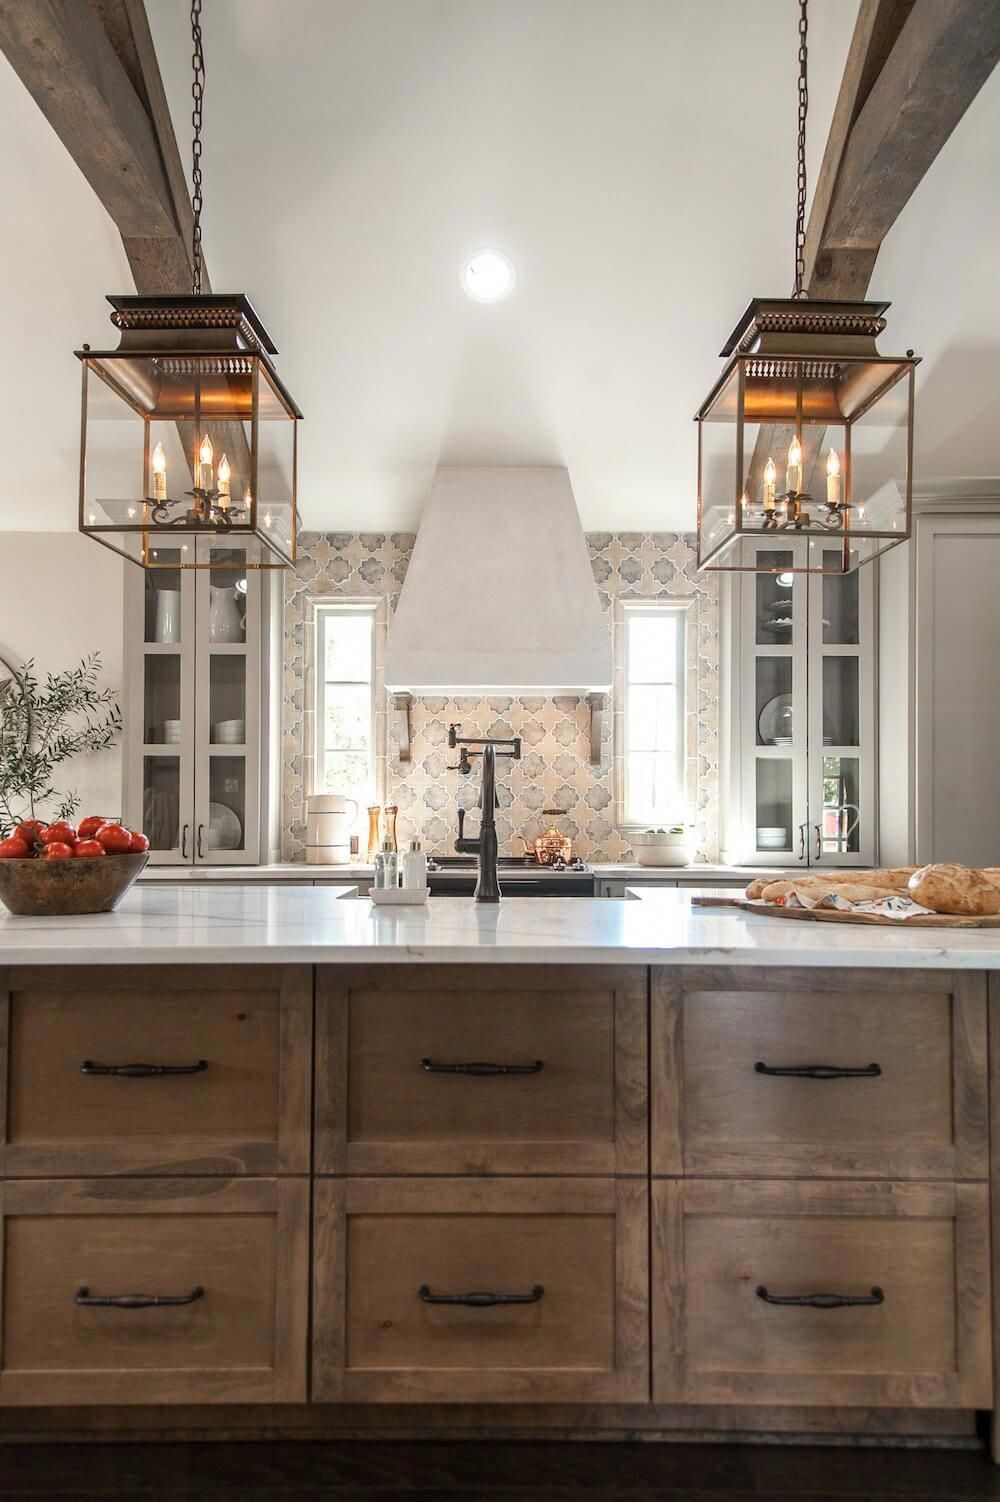 Raw Wood Kitchen Cabinets With Black Hardware